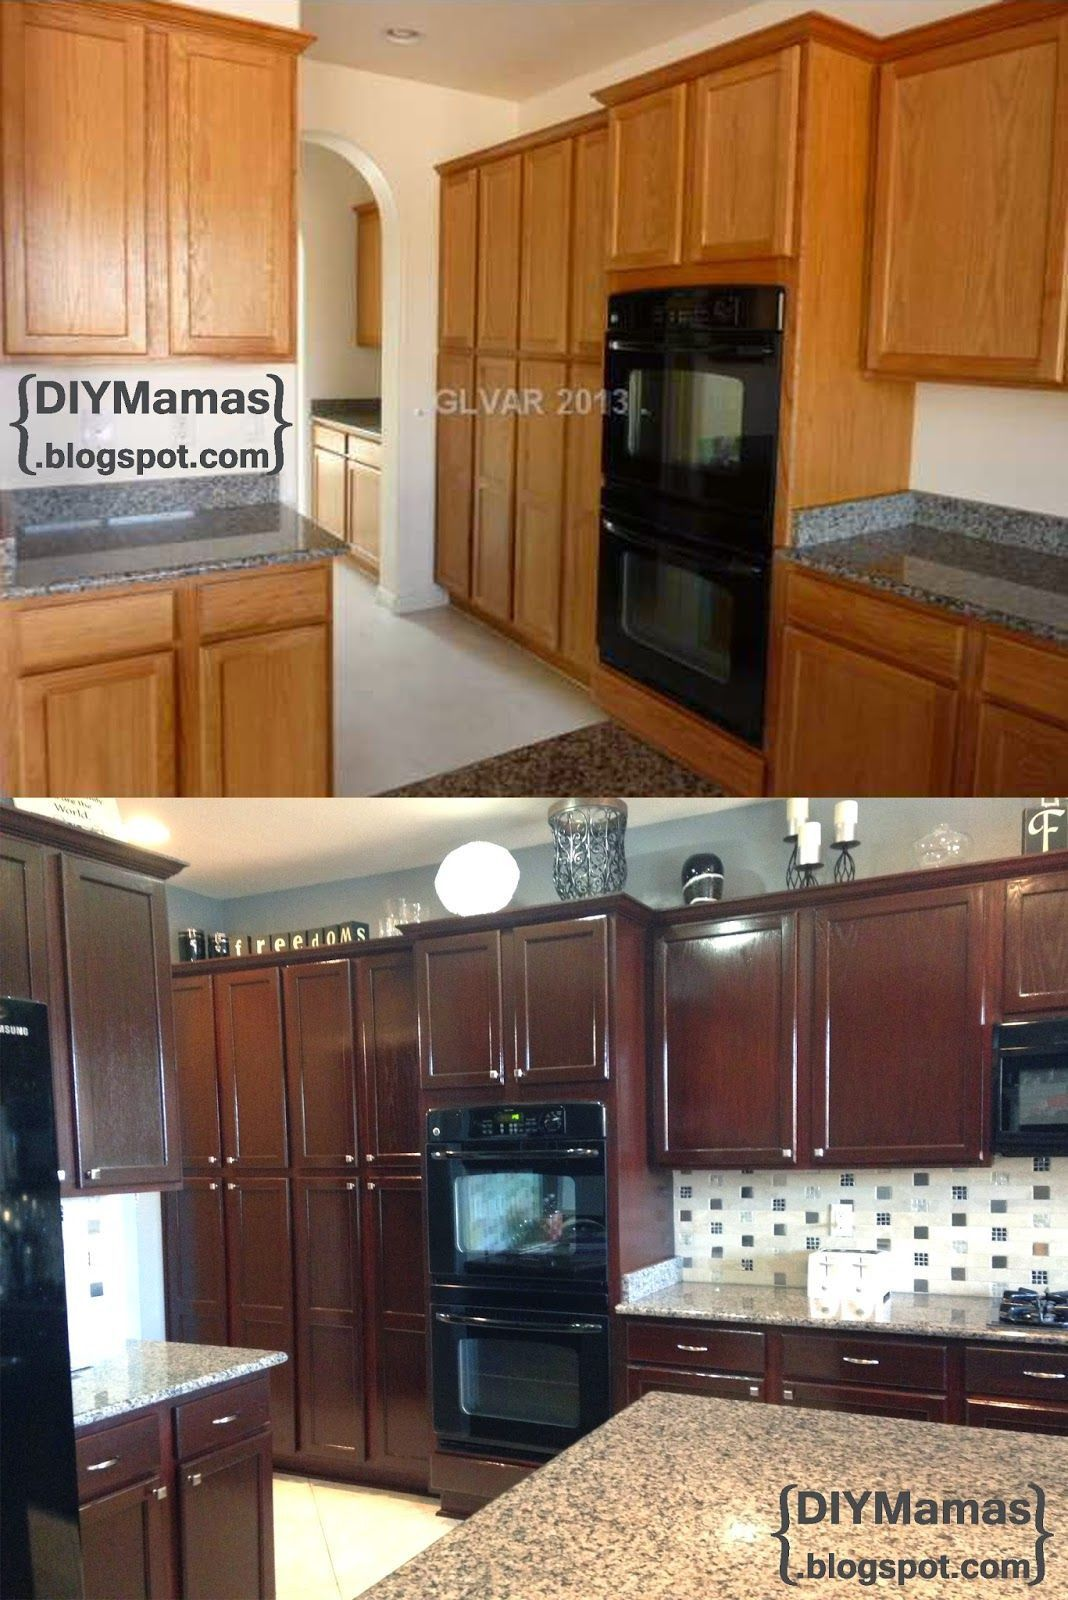 20 How To Restain Cabinets Kitchen Cabinets Update Ideas On A Budget Check More At Http Stained Kitchen Cabinets Kitchen Cabinets Makeover Staining Cabinets